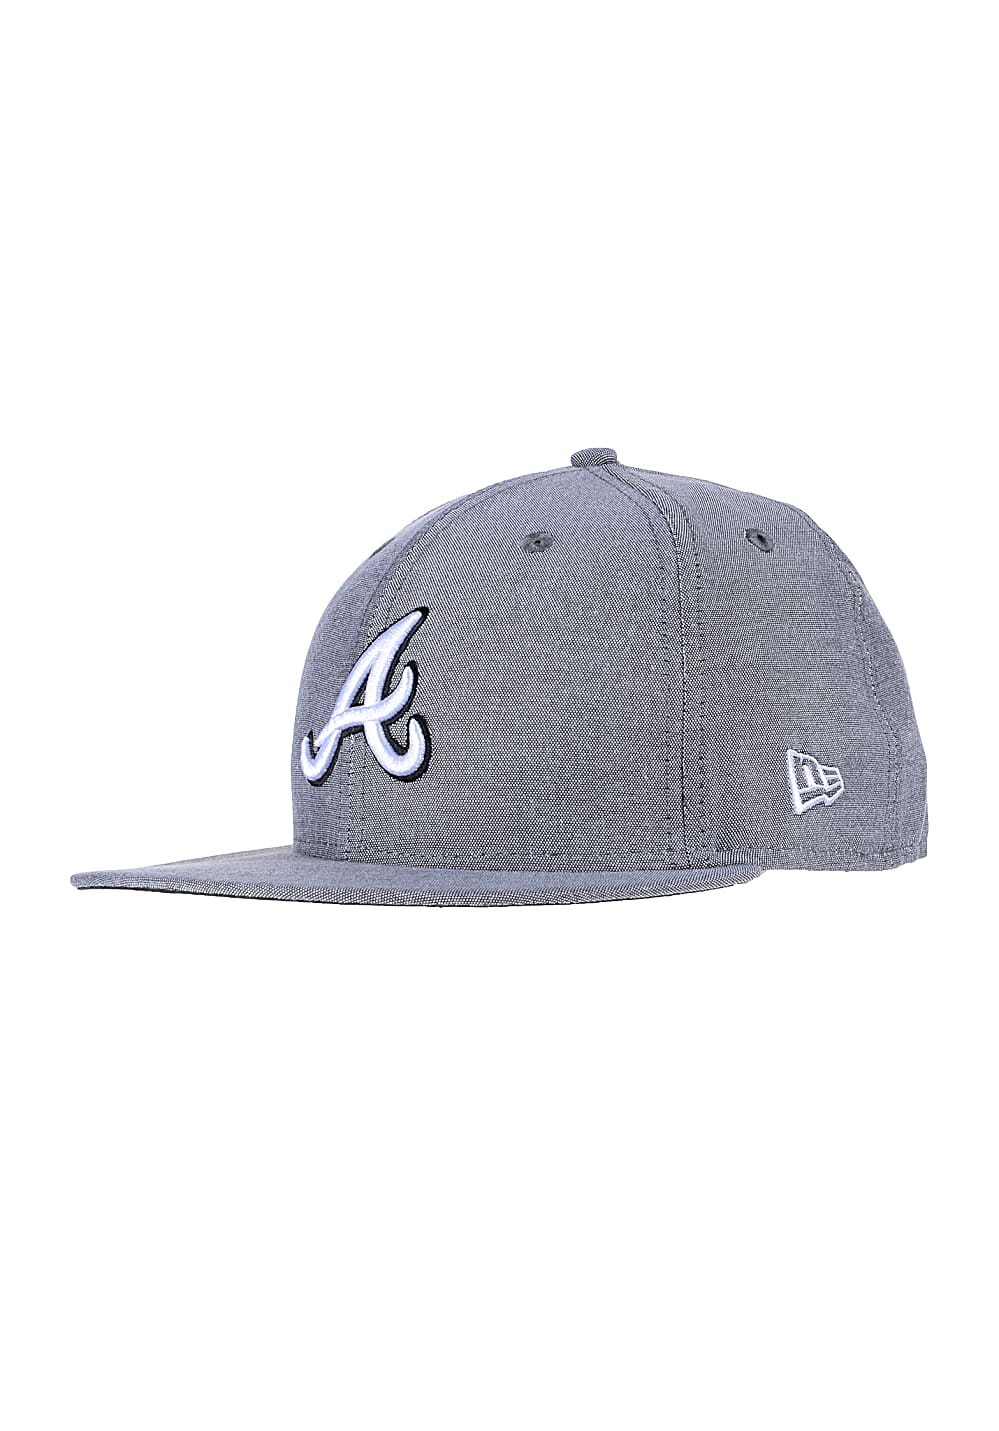 NEW Era Teamox Atlanta Braves Fitted Cap - Grau - 7inch